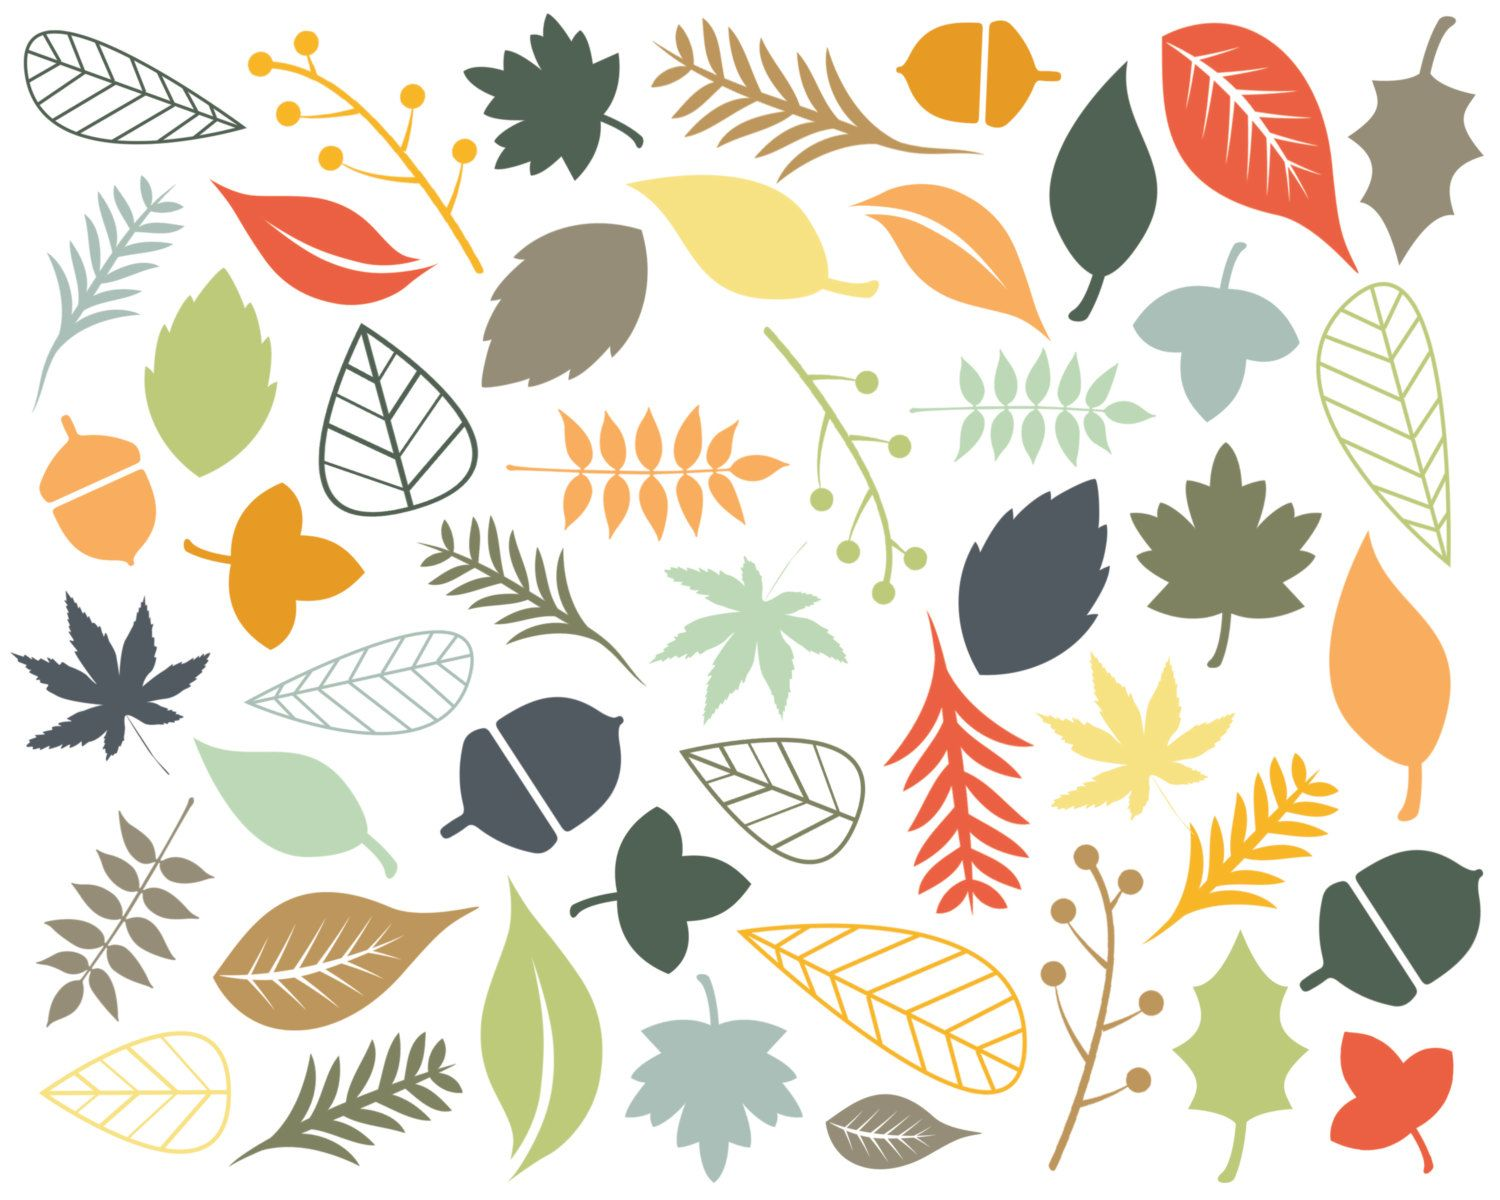 50 Autumn Leaves Clip Art Wallpapers   Download at WallpaperBro 1500x1200